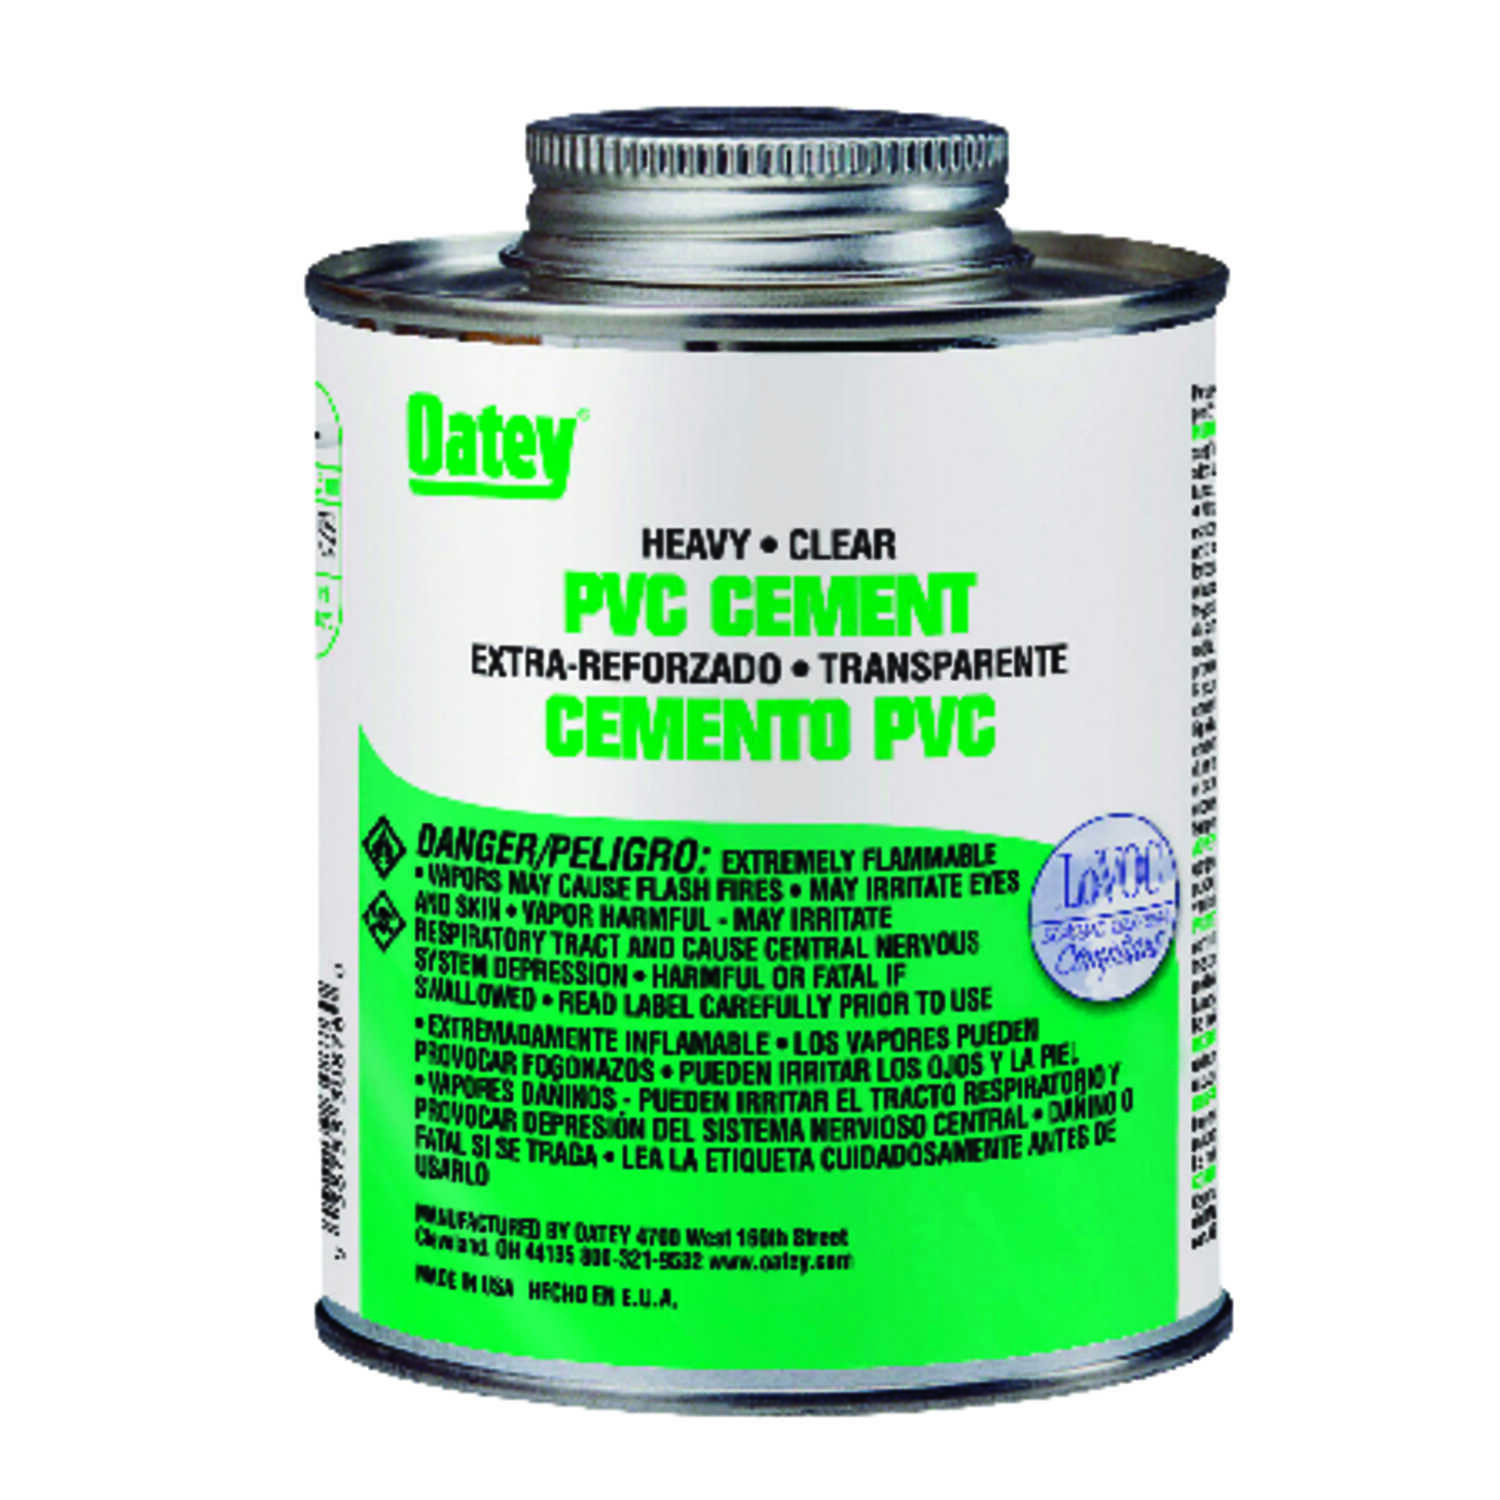 Oatey  Heavy Duty  Clear  Cement  For PVC 8 oz.